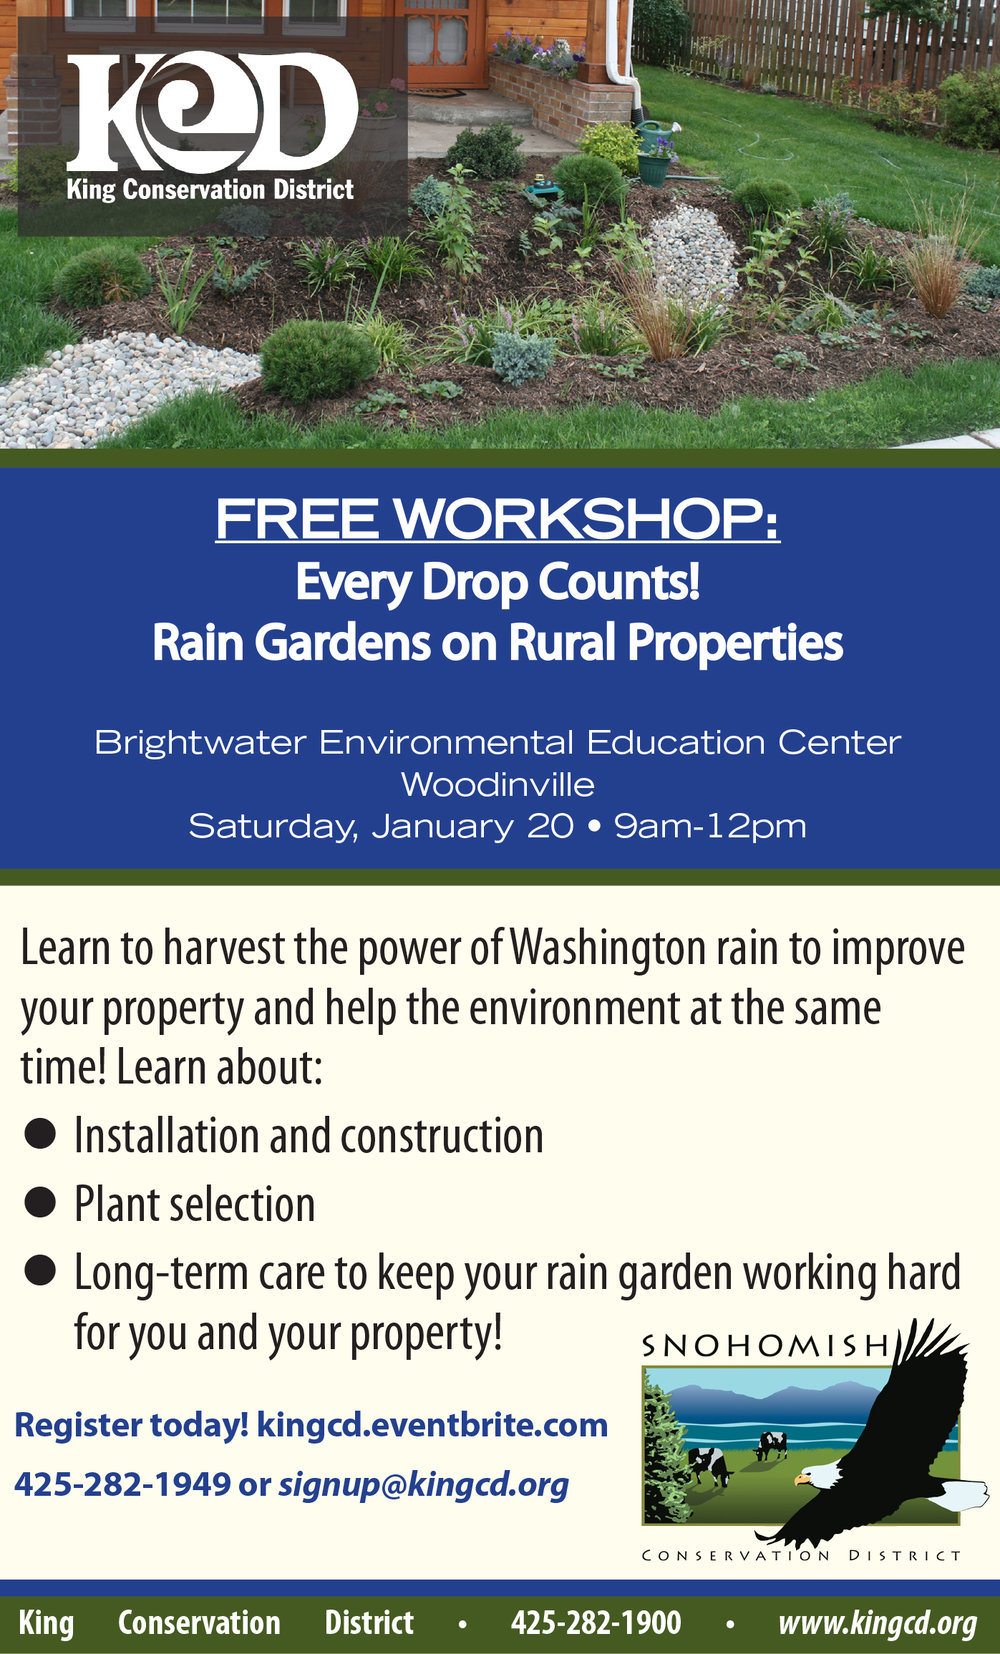 Rain Garden Workshop Flyer_4 - half.jpg